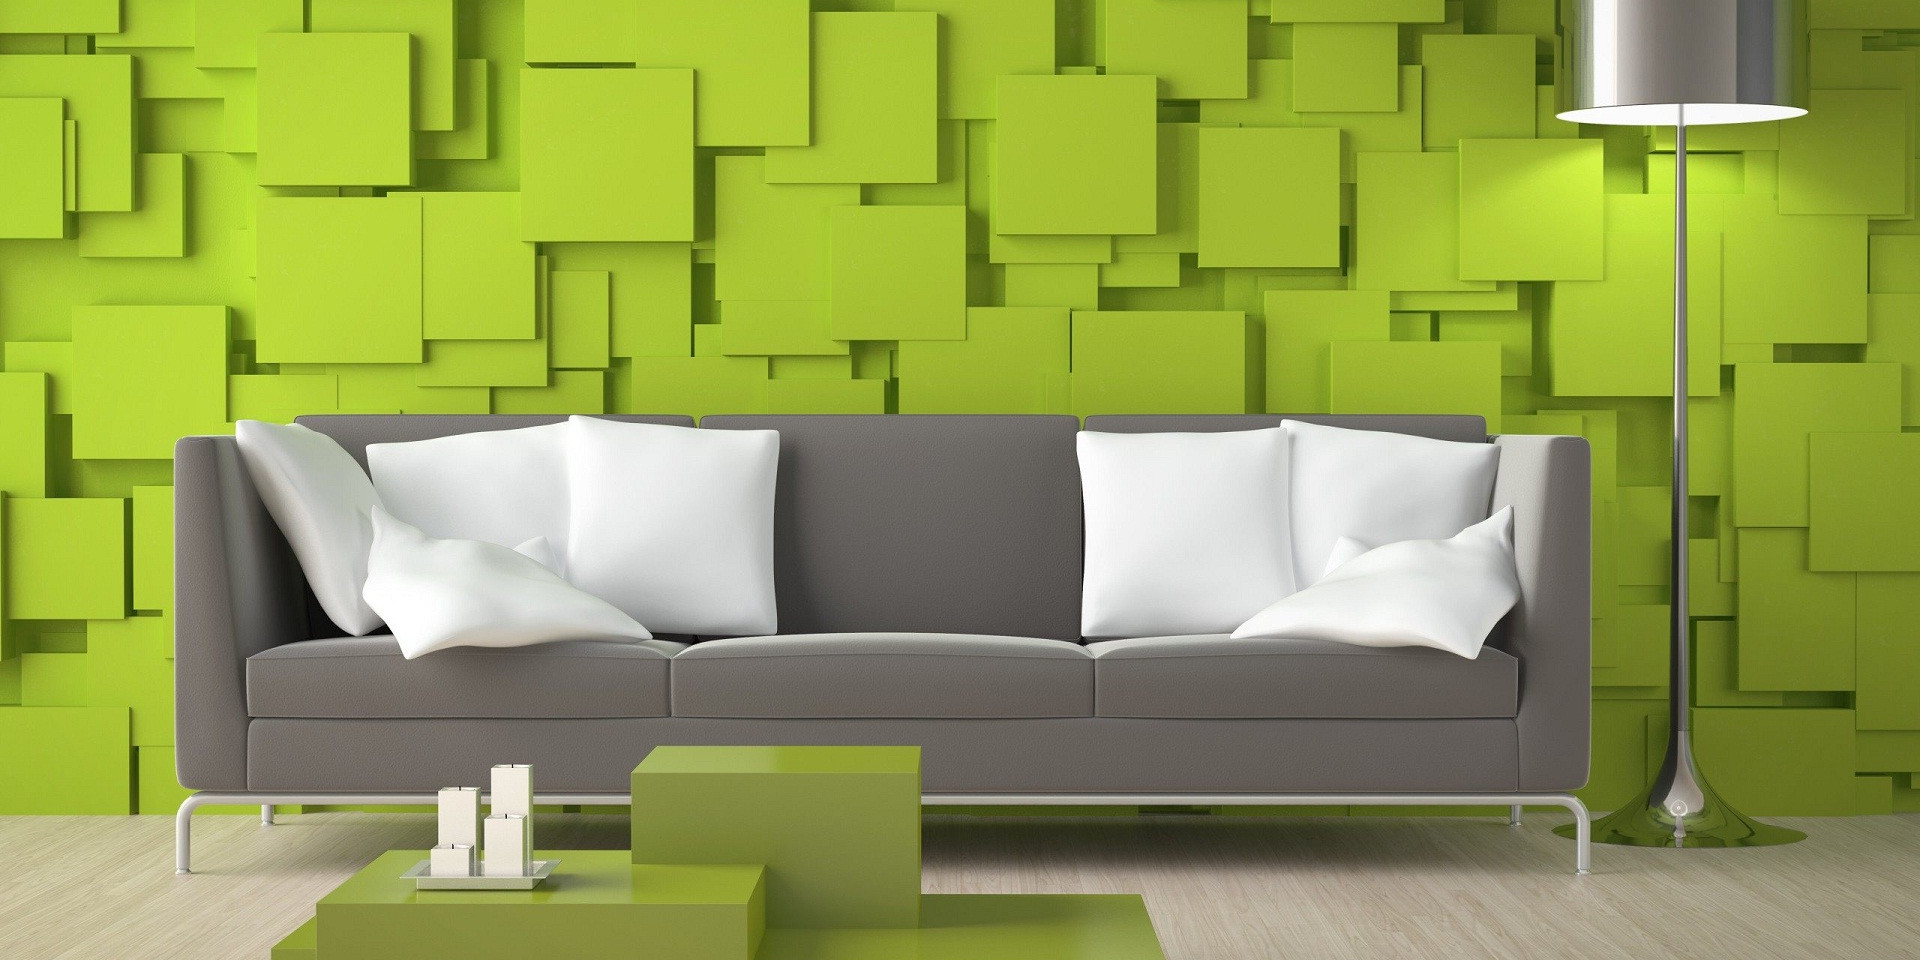 LifeNcolors-best-3D-wallpaper-green-cubes